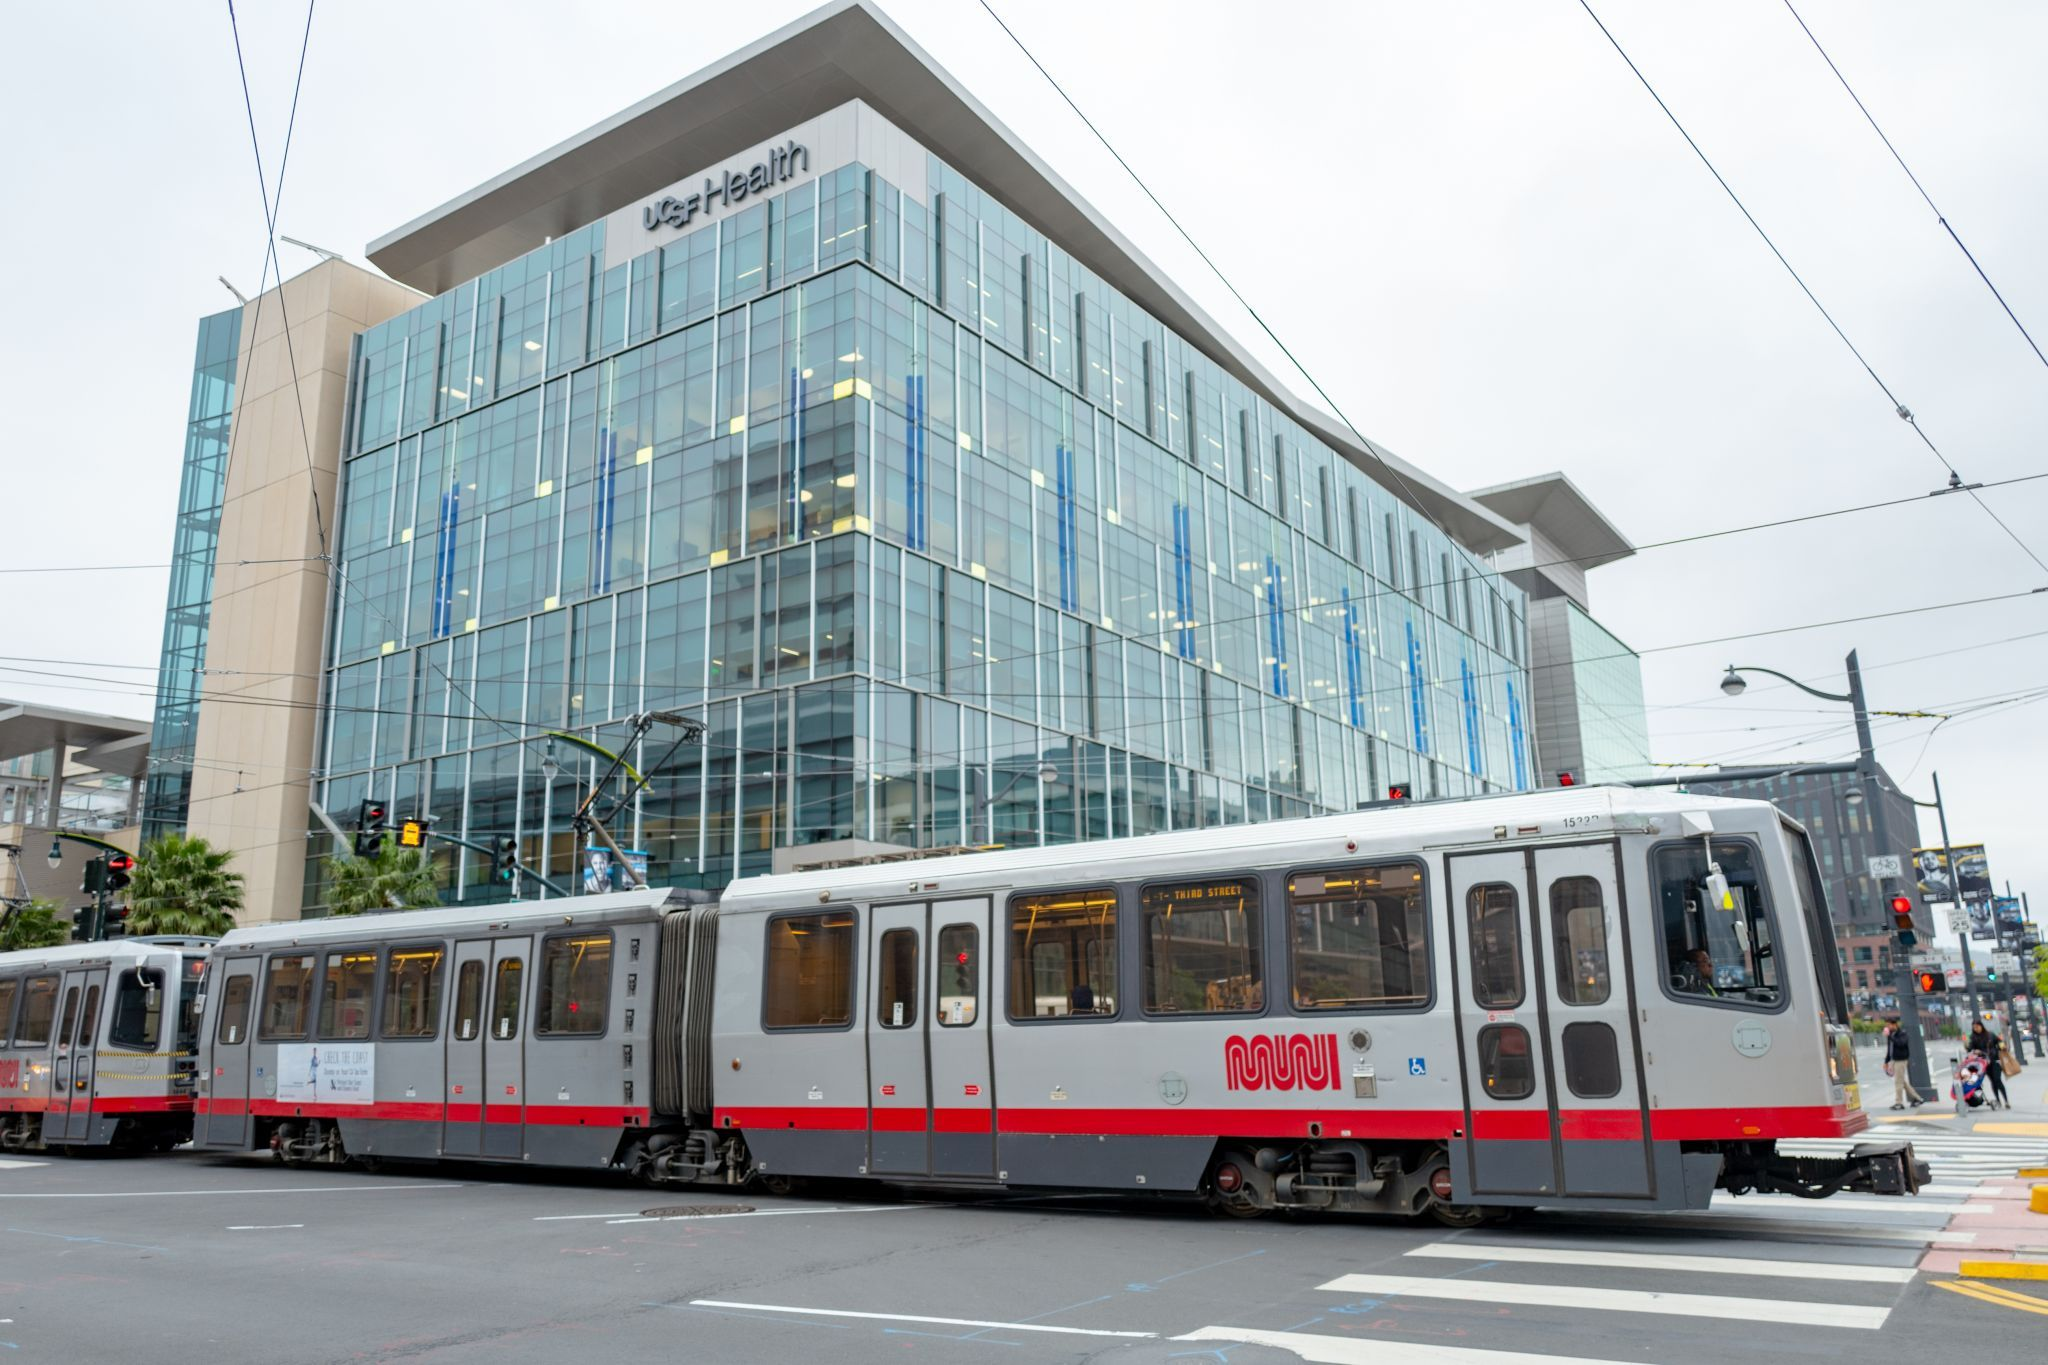 Muni Says It Won T Transport Sfpd To Protests We Have A Lot Of Work To Do San Francisco Neighborhoods Sfpd Mission Bay